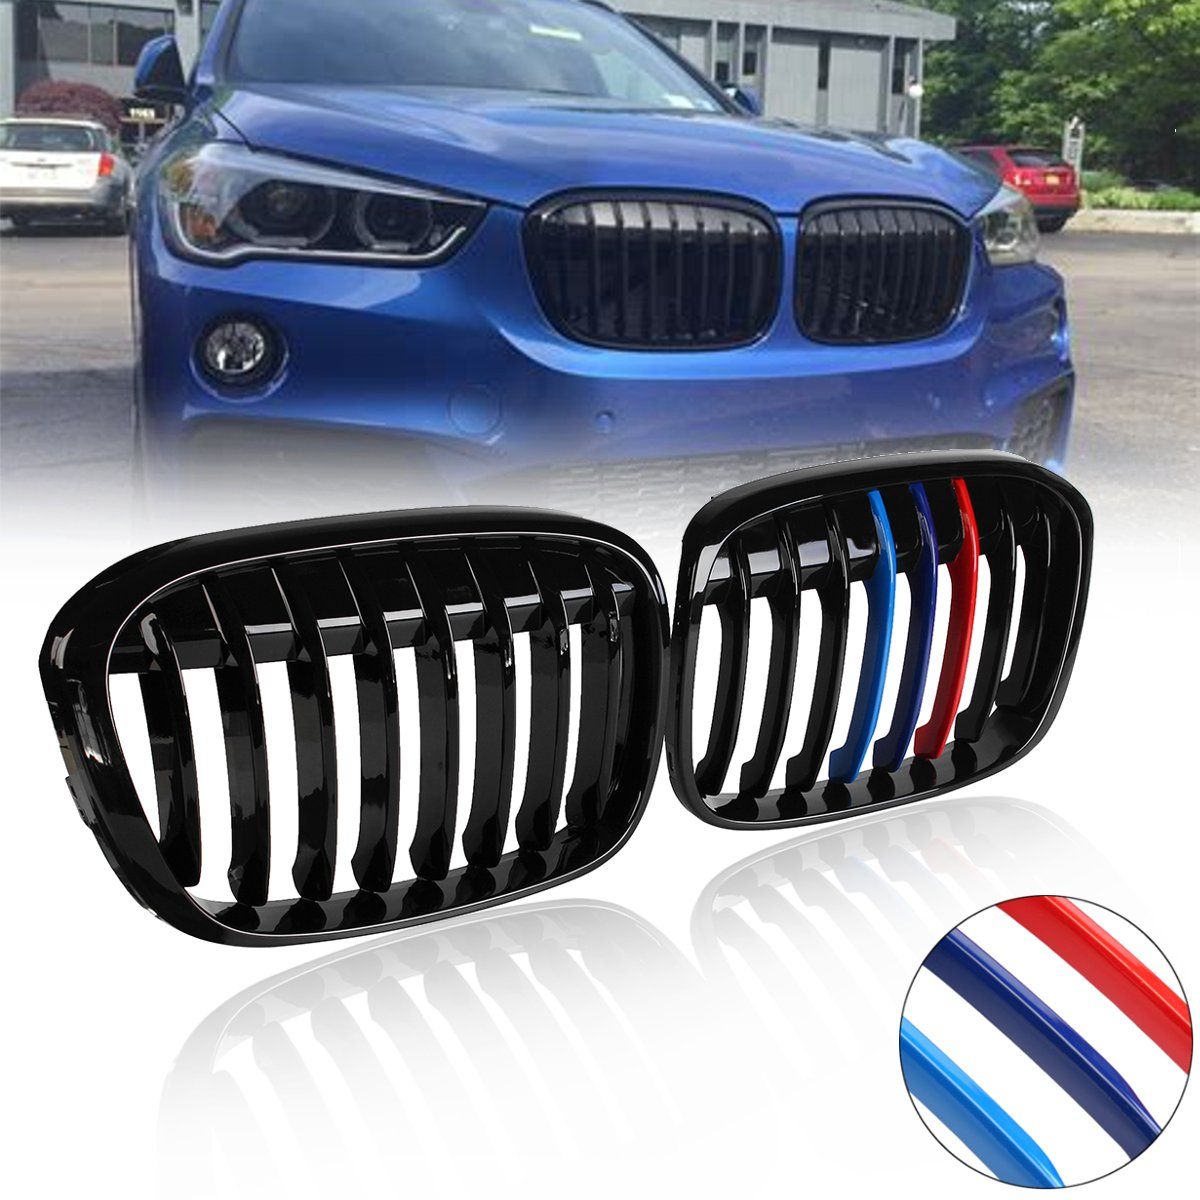 Pair Matte Black M-Color Front Kidney Grill Grille for BMW F48 F49 X1 X-Series 2016 2017